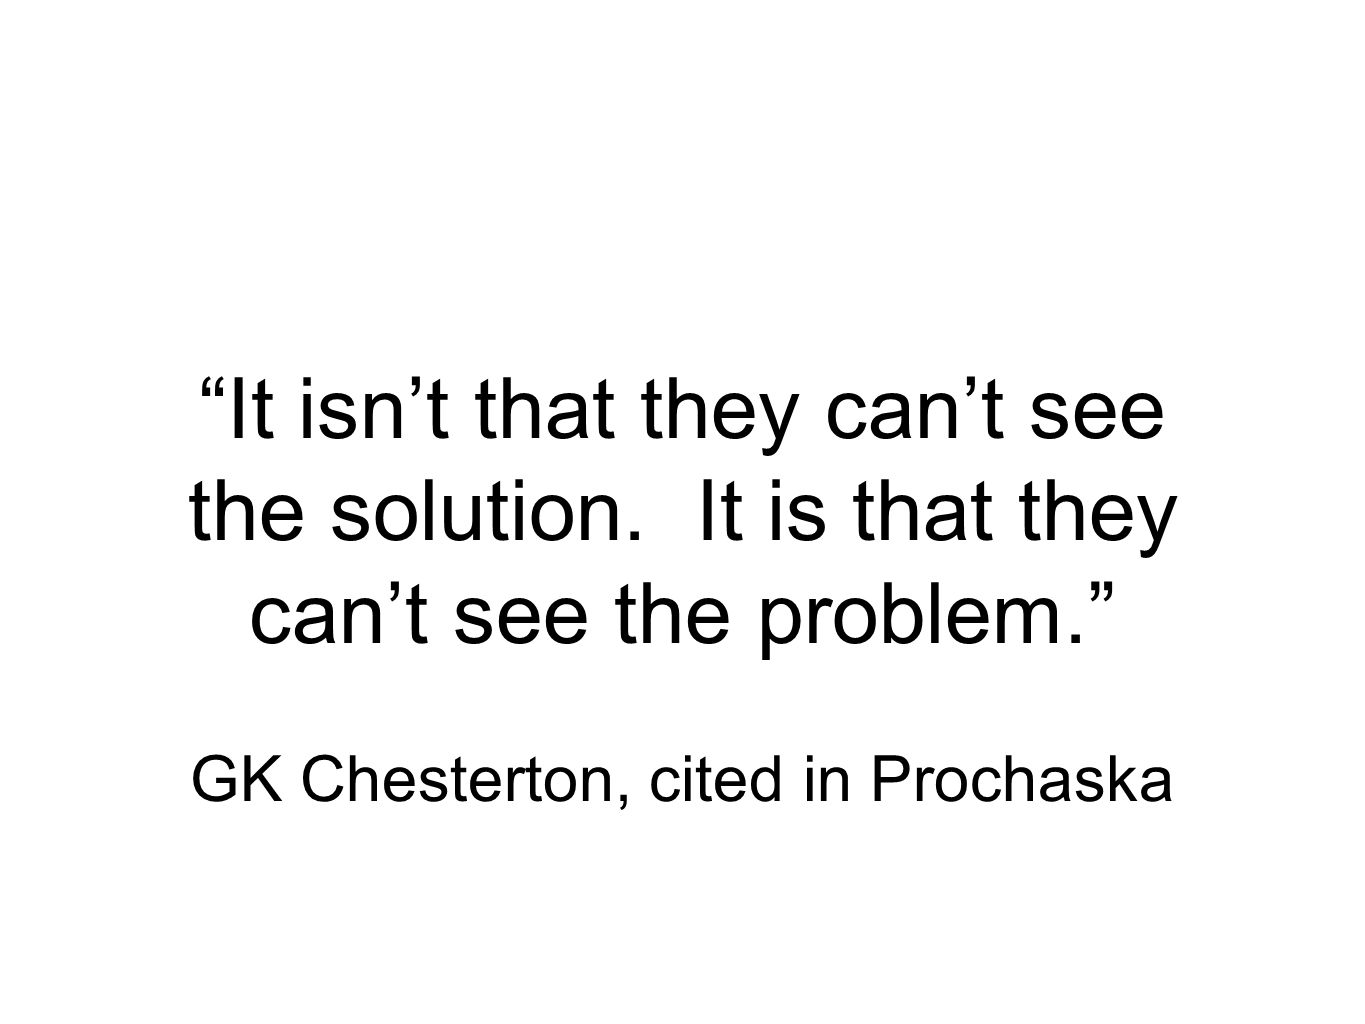 It isnt that they cant see the solution. It is that they cant see the problem.